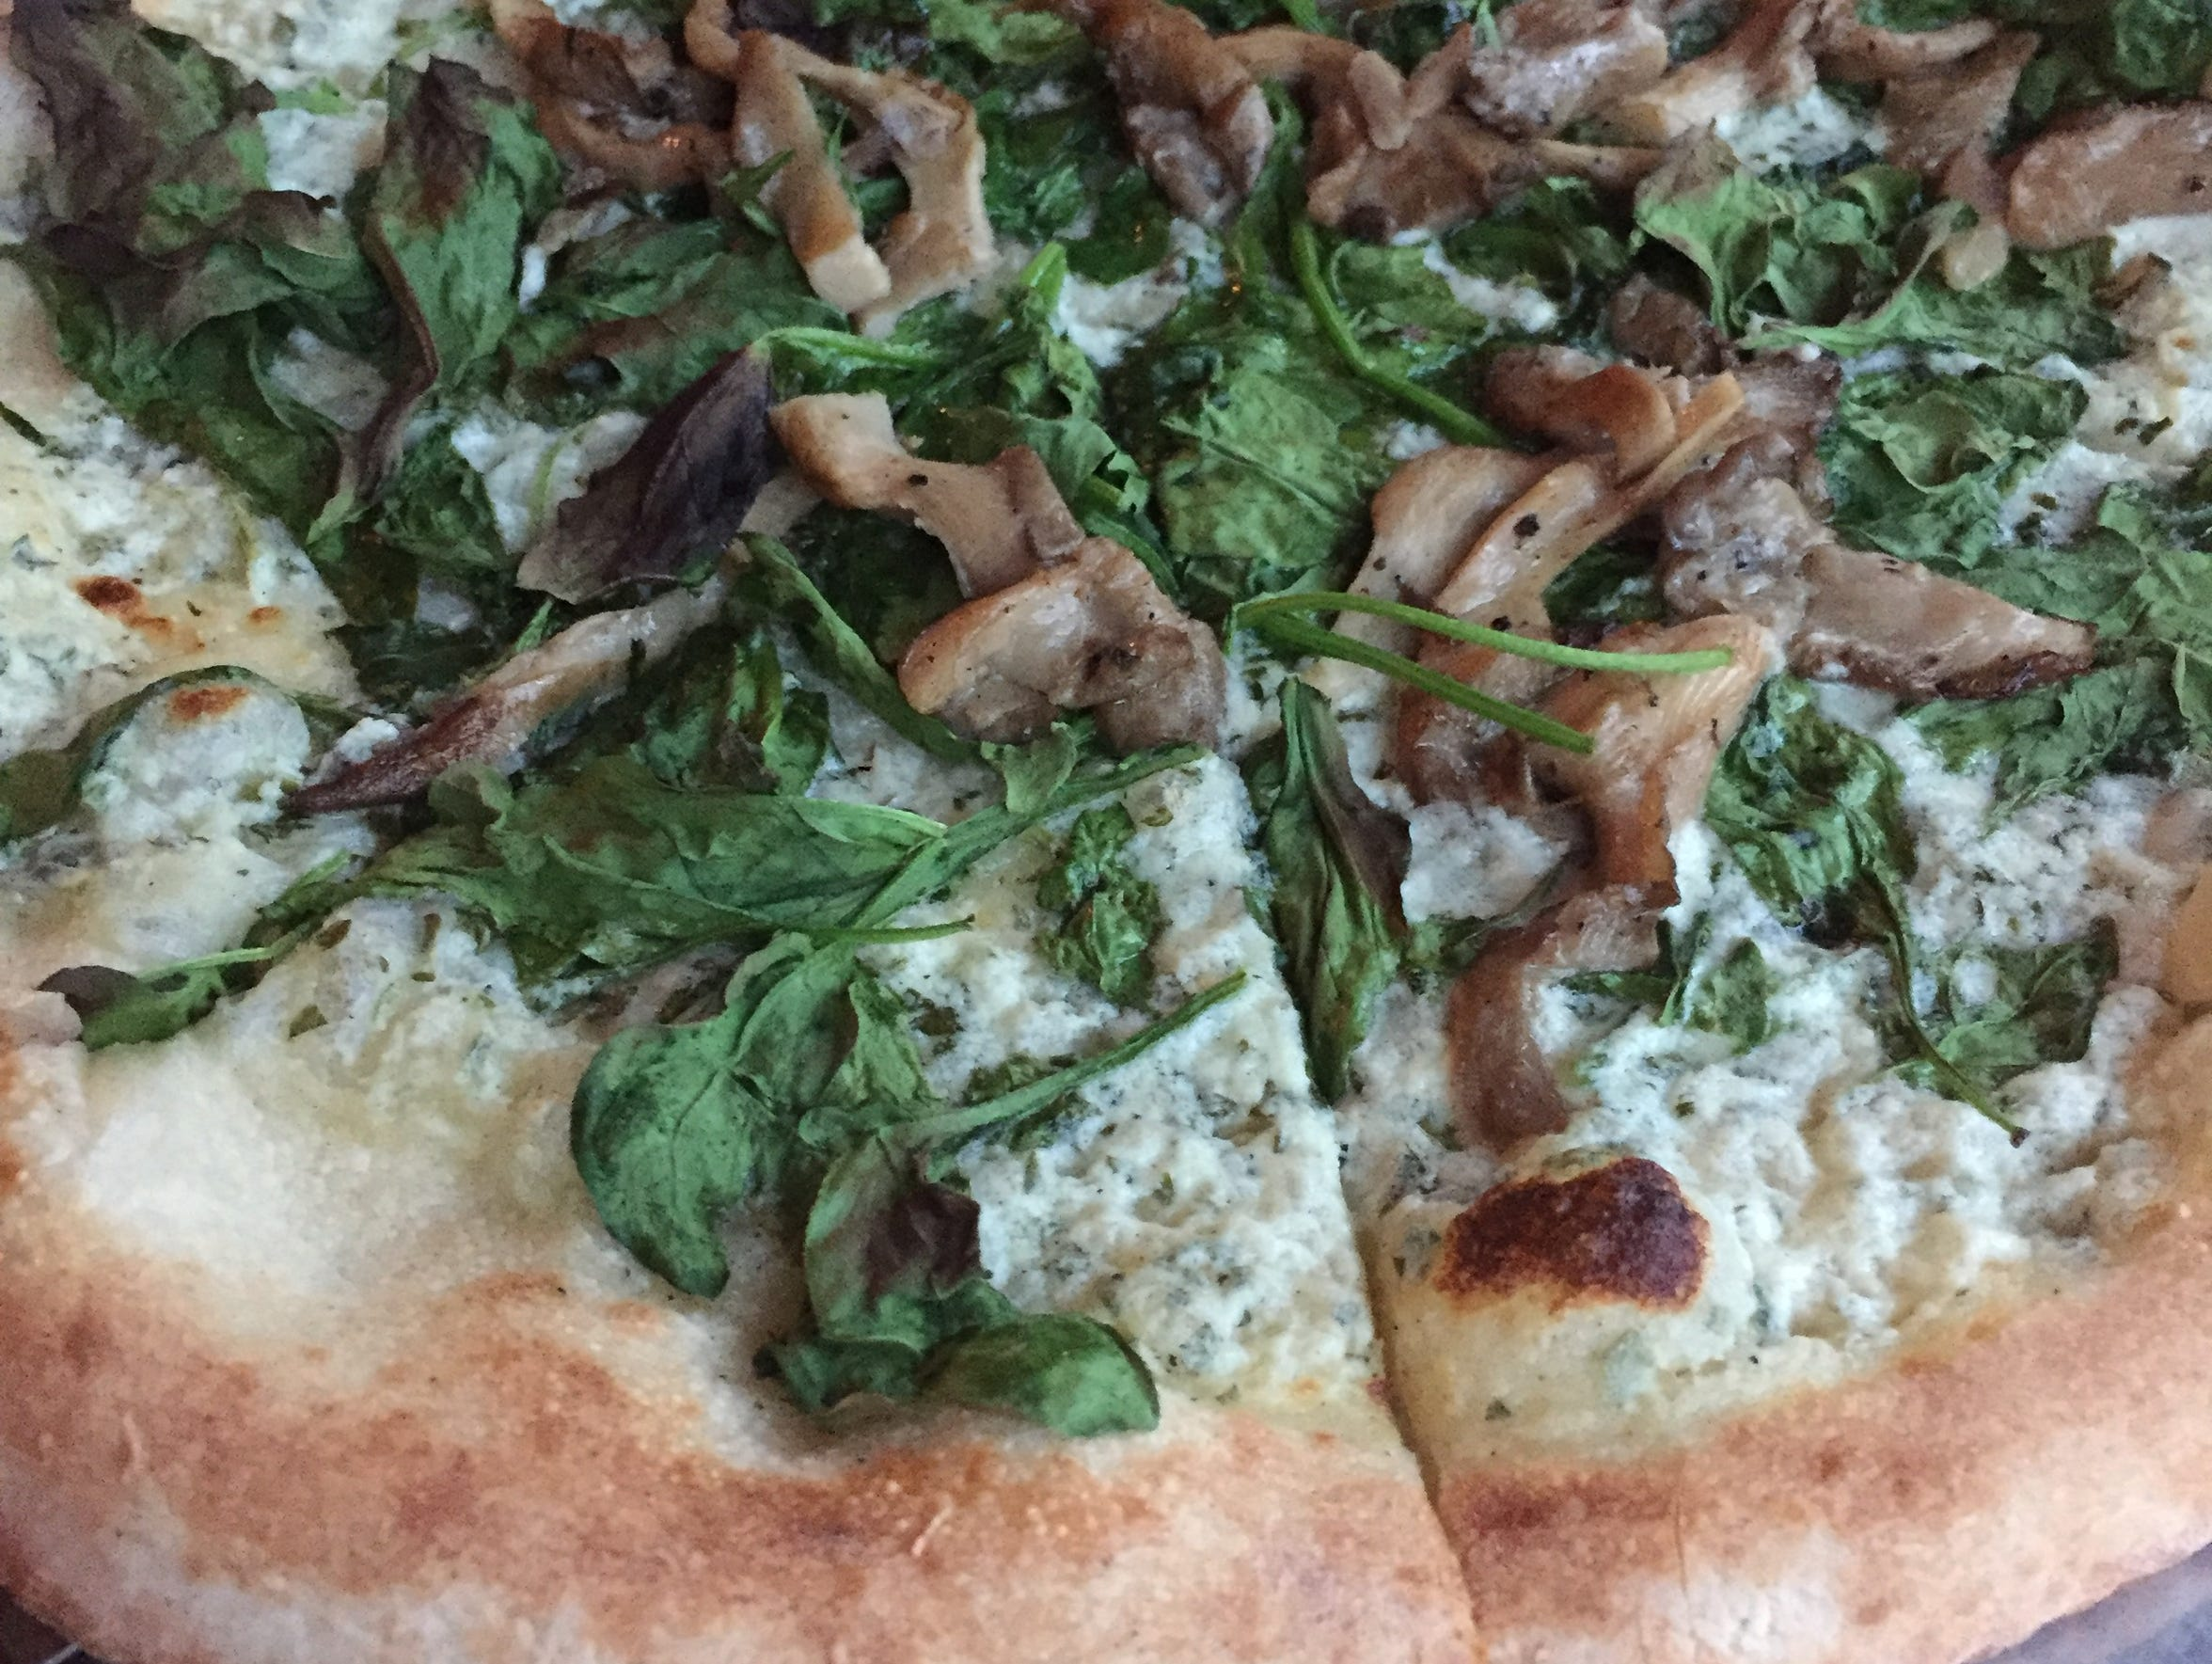 The wood-fired pizza with  whipped goat cheese, spinach